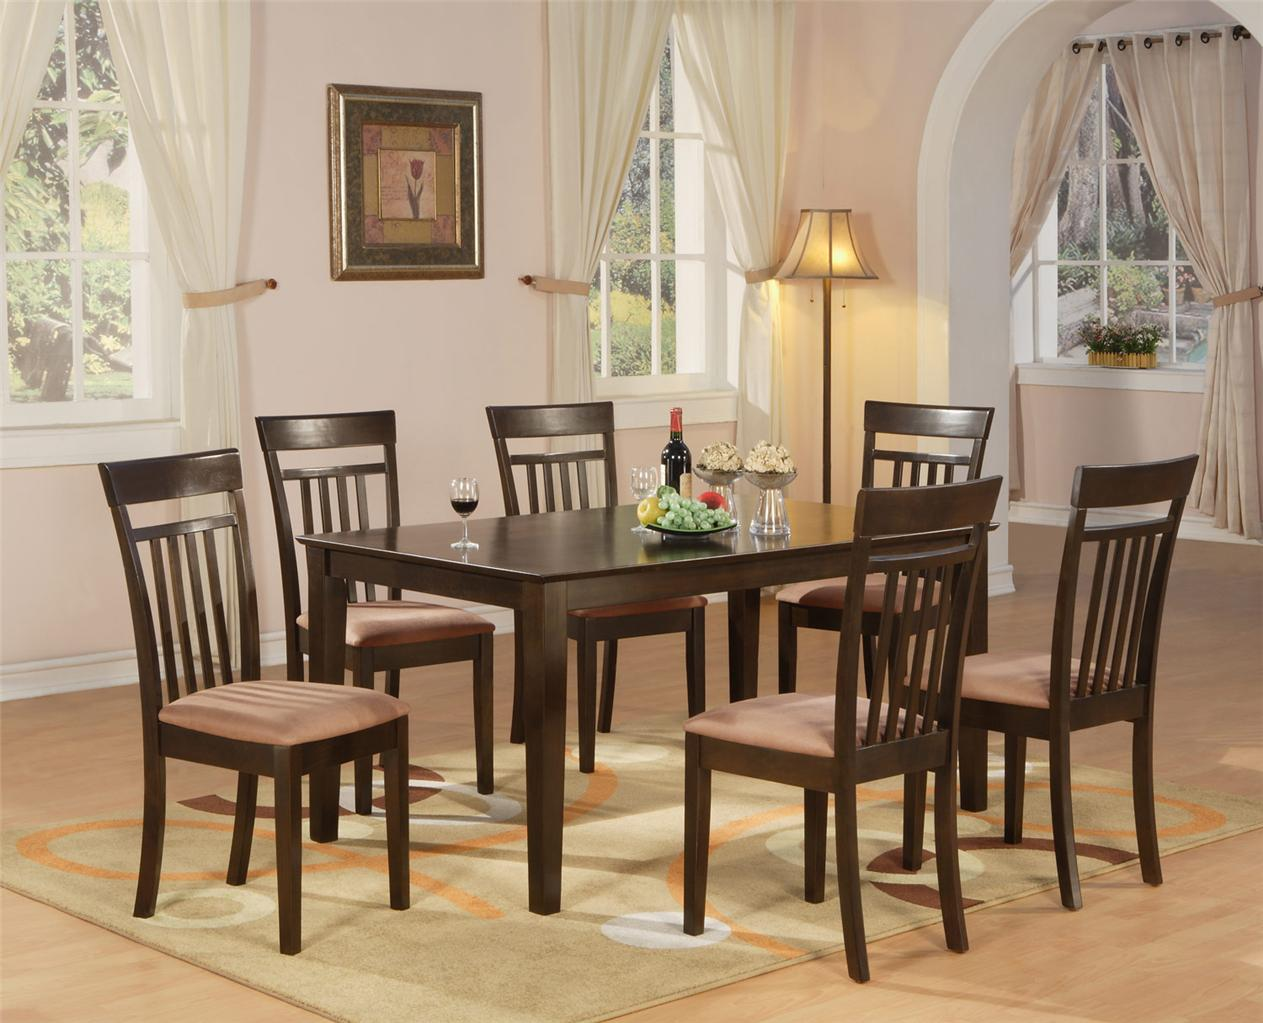 7 pc dining room dinette kitchen set table and 6 chairs ebay for Dining room table with 6 chairs